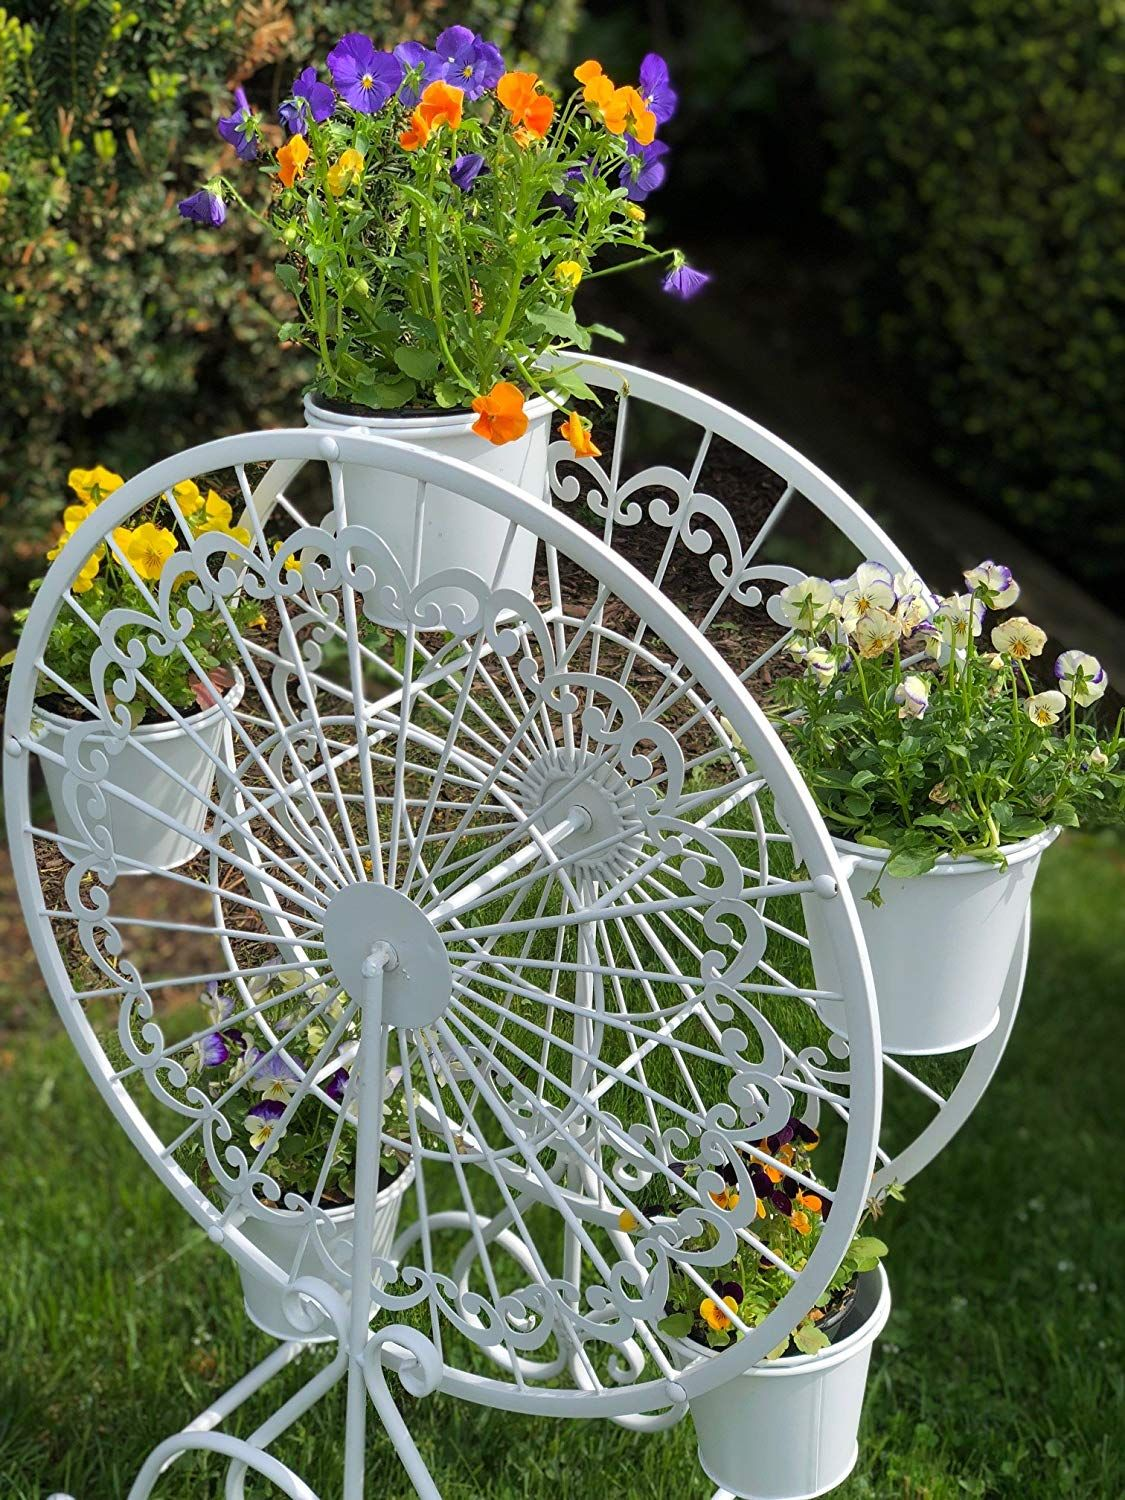 Iron ferris wheel plant stand with 5 pots